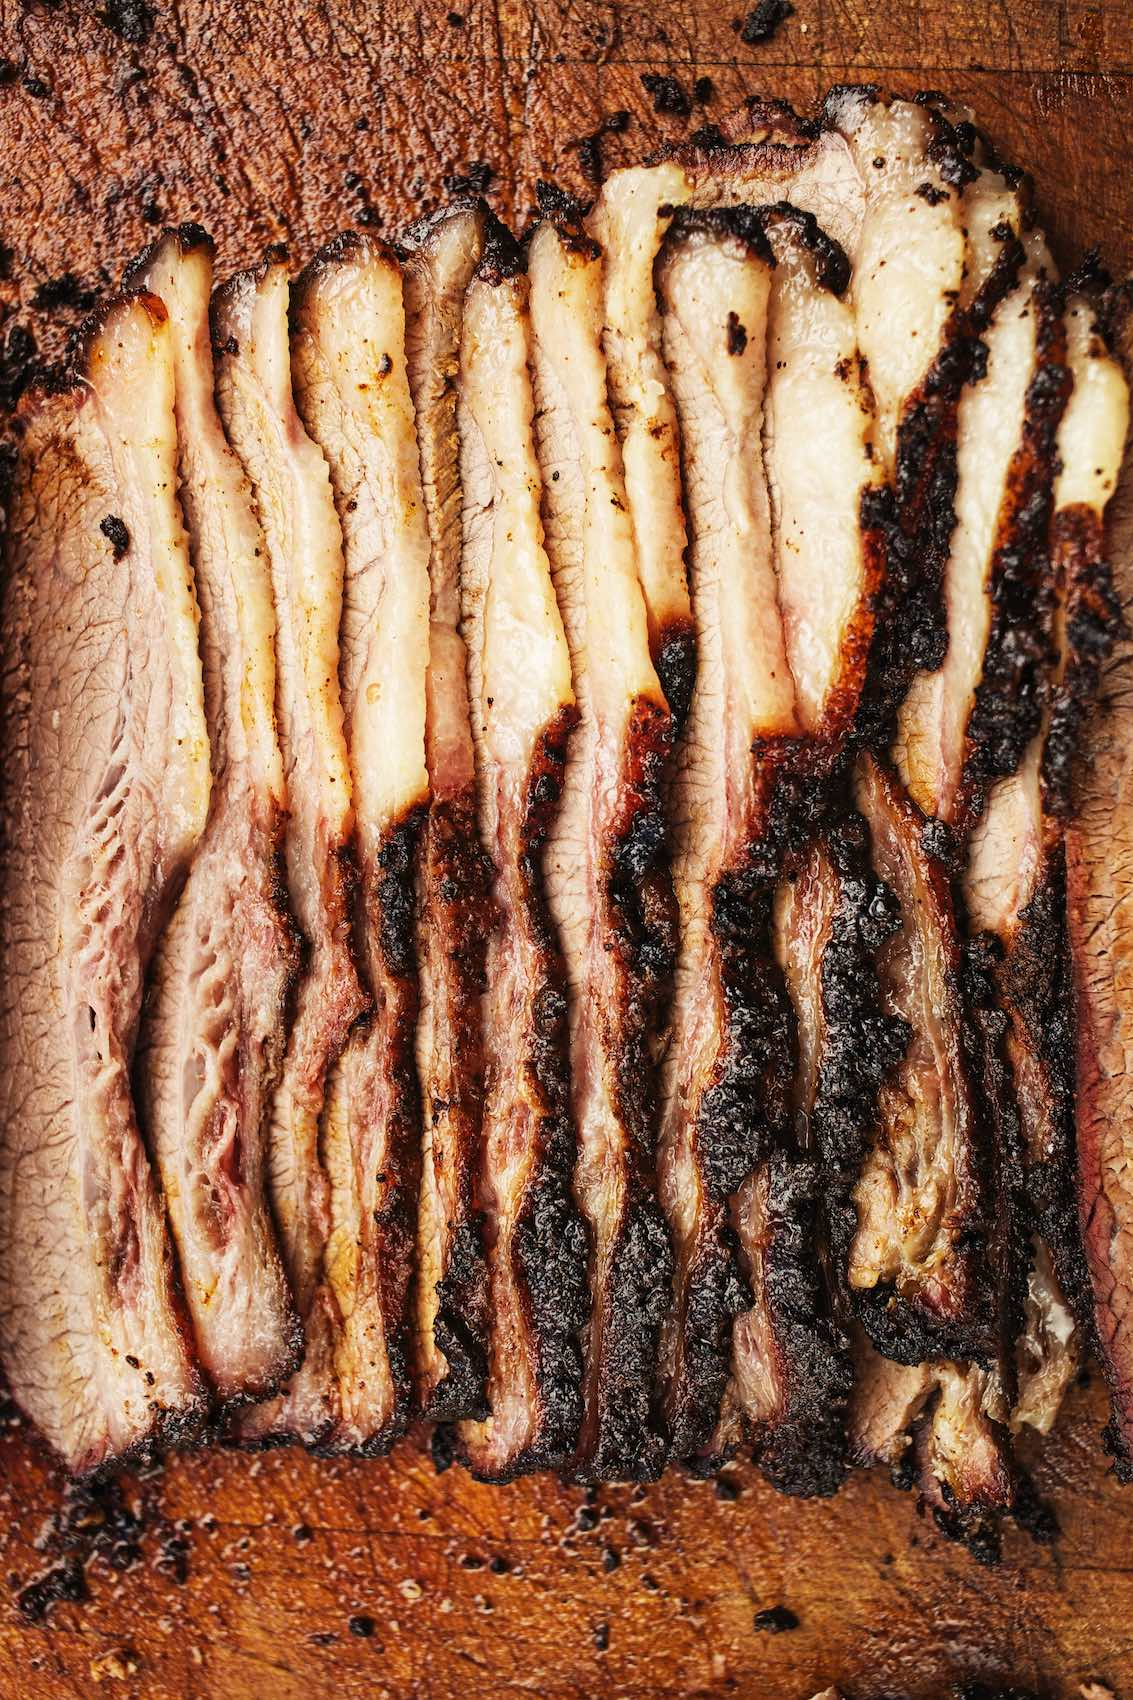 Jody Horton Photography - Sliced brisket on wood cutting board.